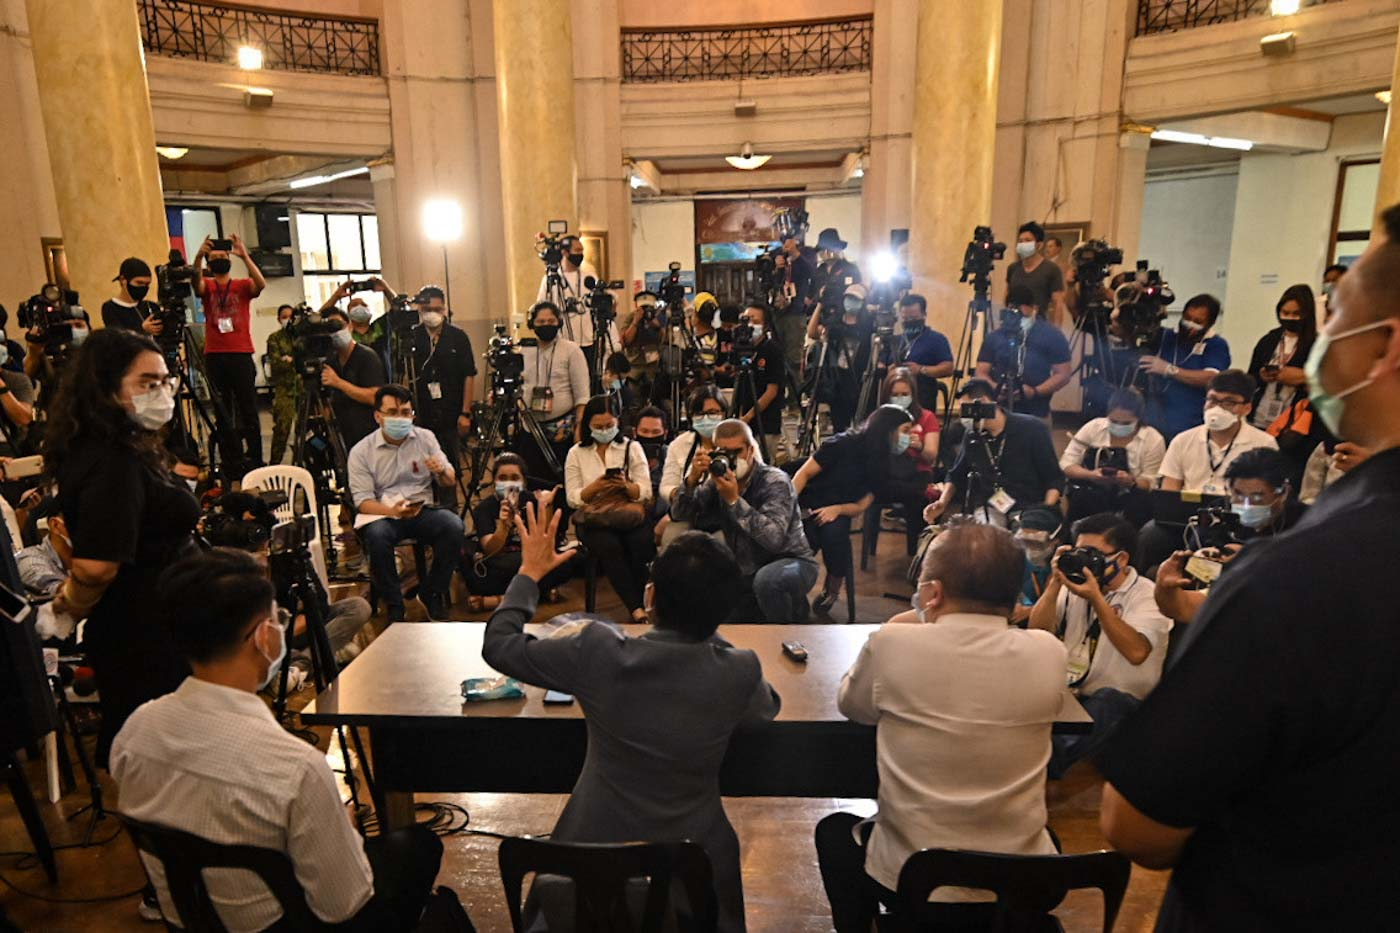 CYBER LIBEL. Rappler CEO Maria Ressa faces the media after the Manila Trial Court Branch 46 convicted her and co-accused Reynaldo Santos Jr of cyber libel. Photo by Alecs Ongcal/Rappler